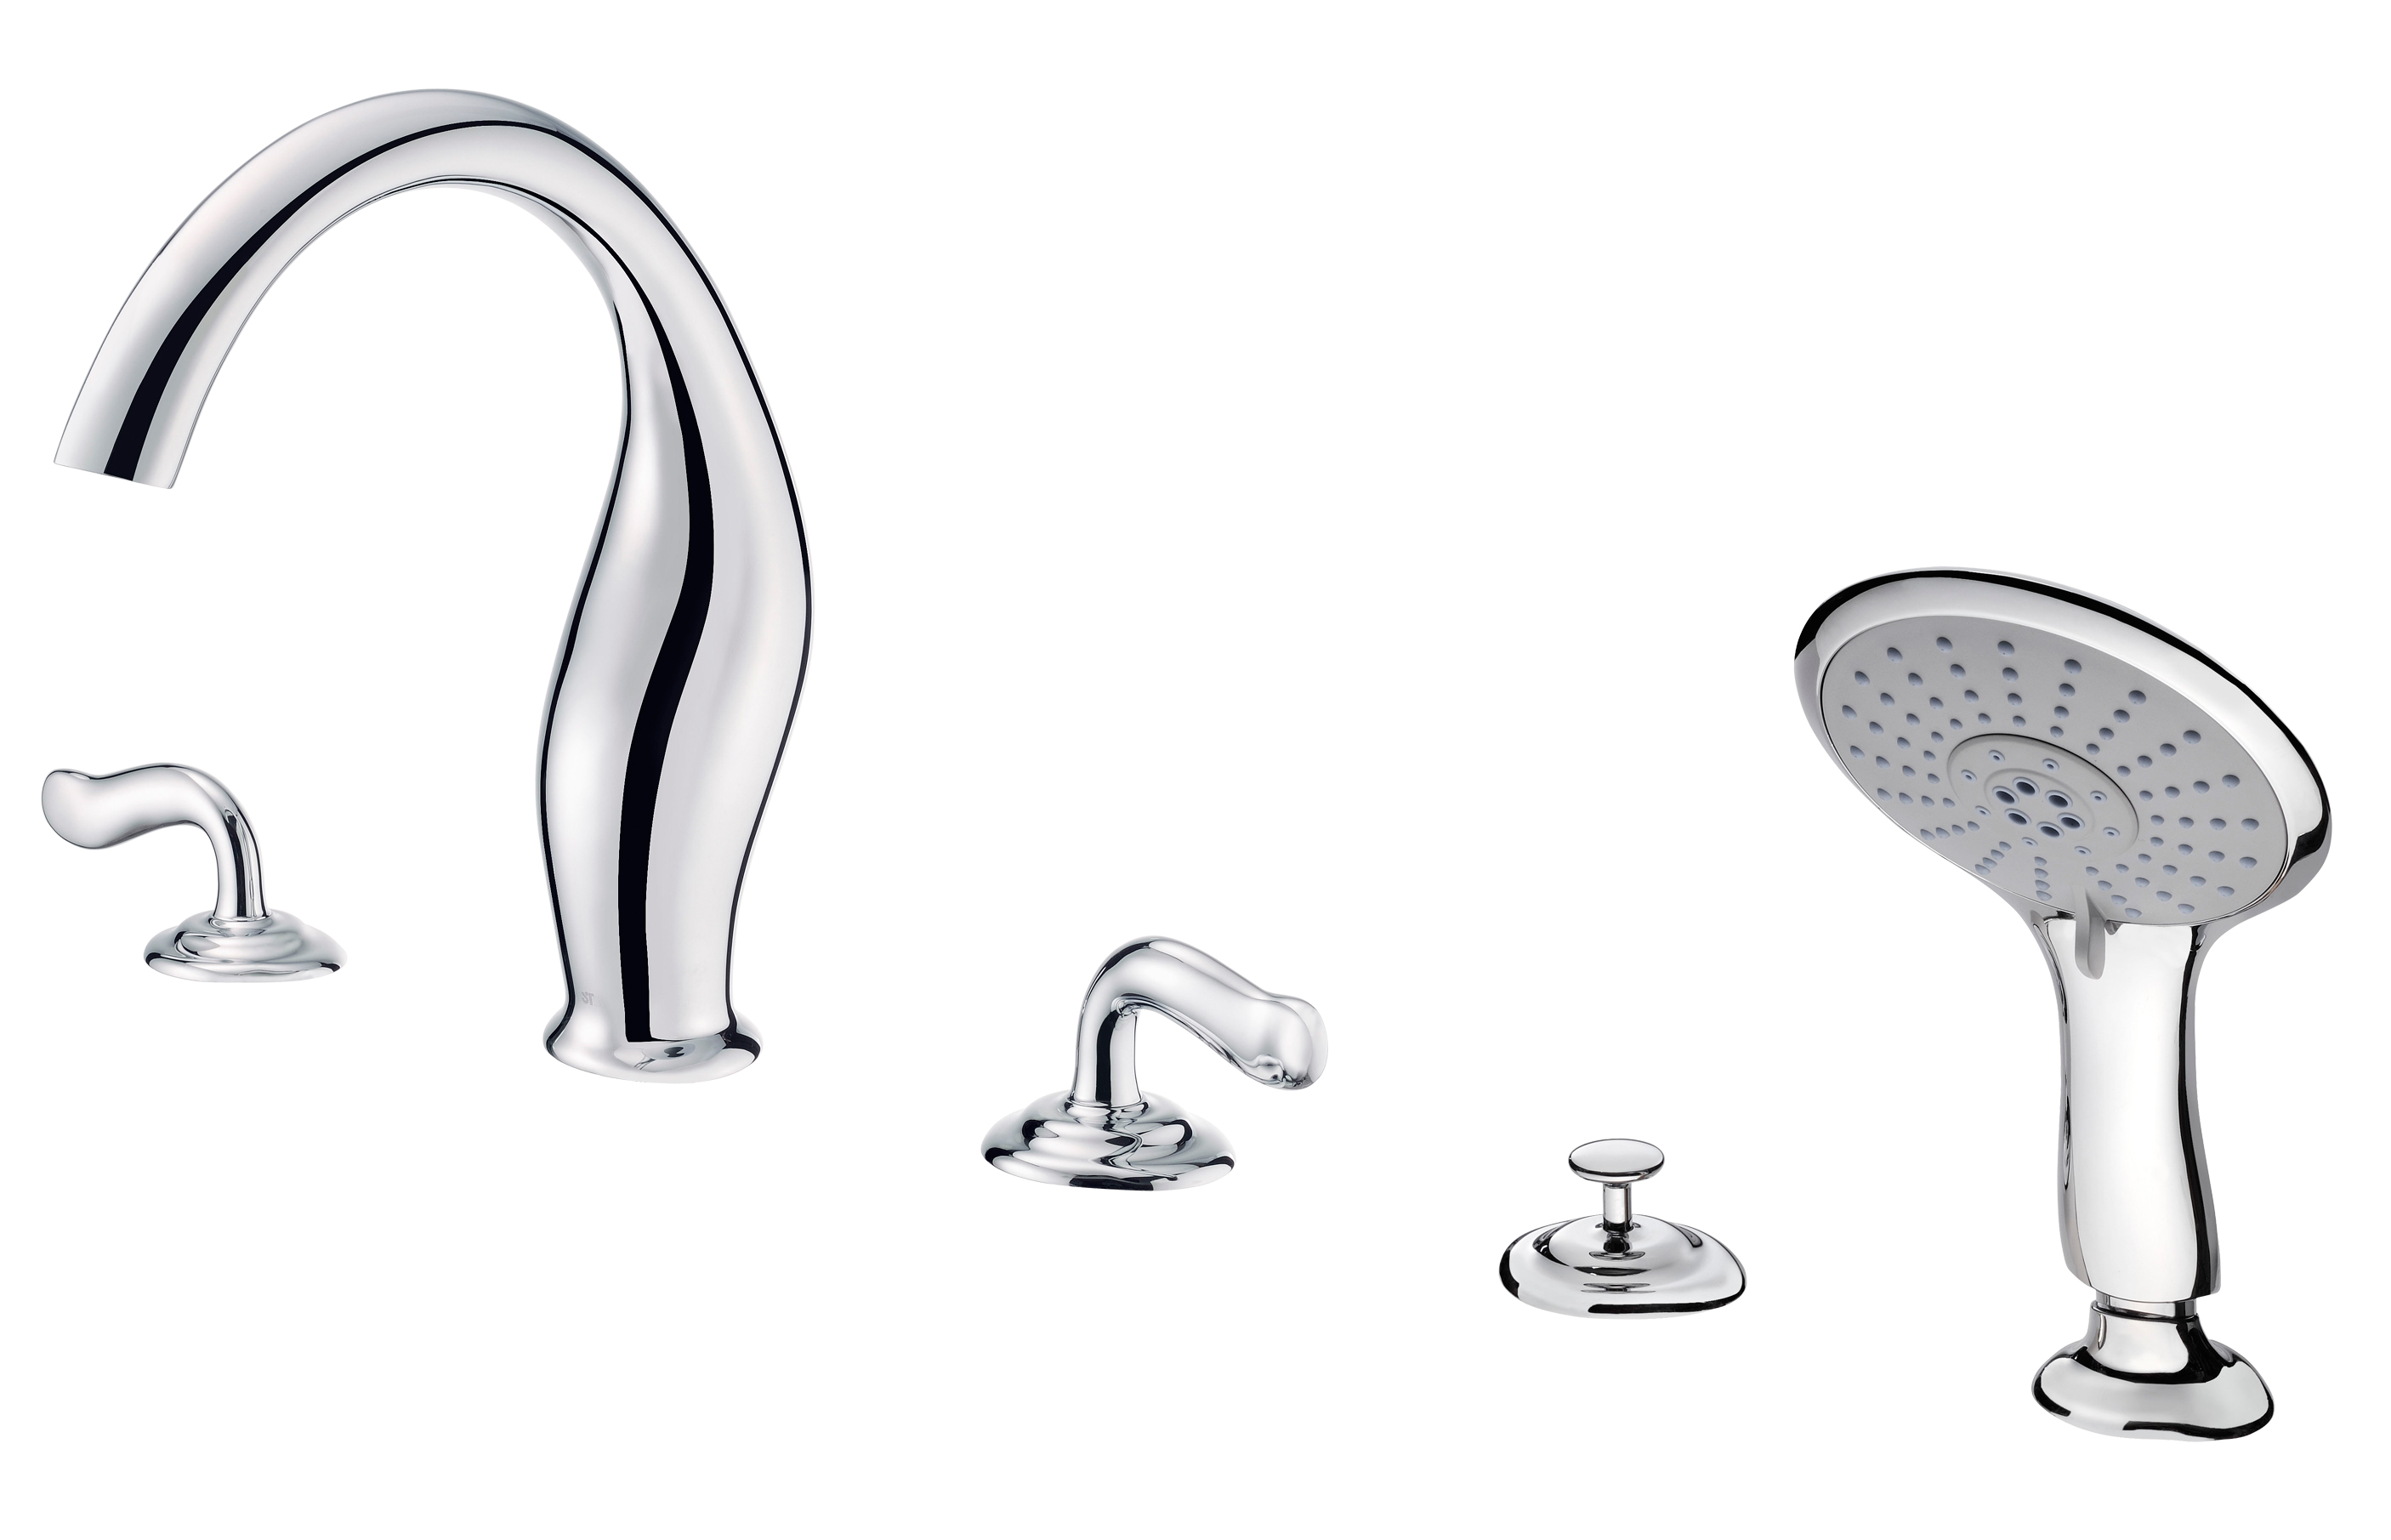 ETHER Two-Handle Bathtub Faucet W/Hand Shower